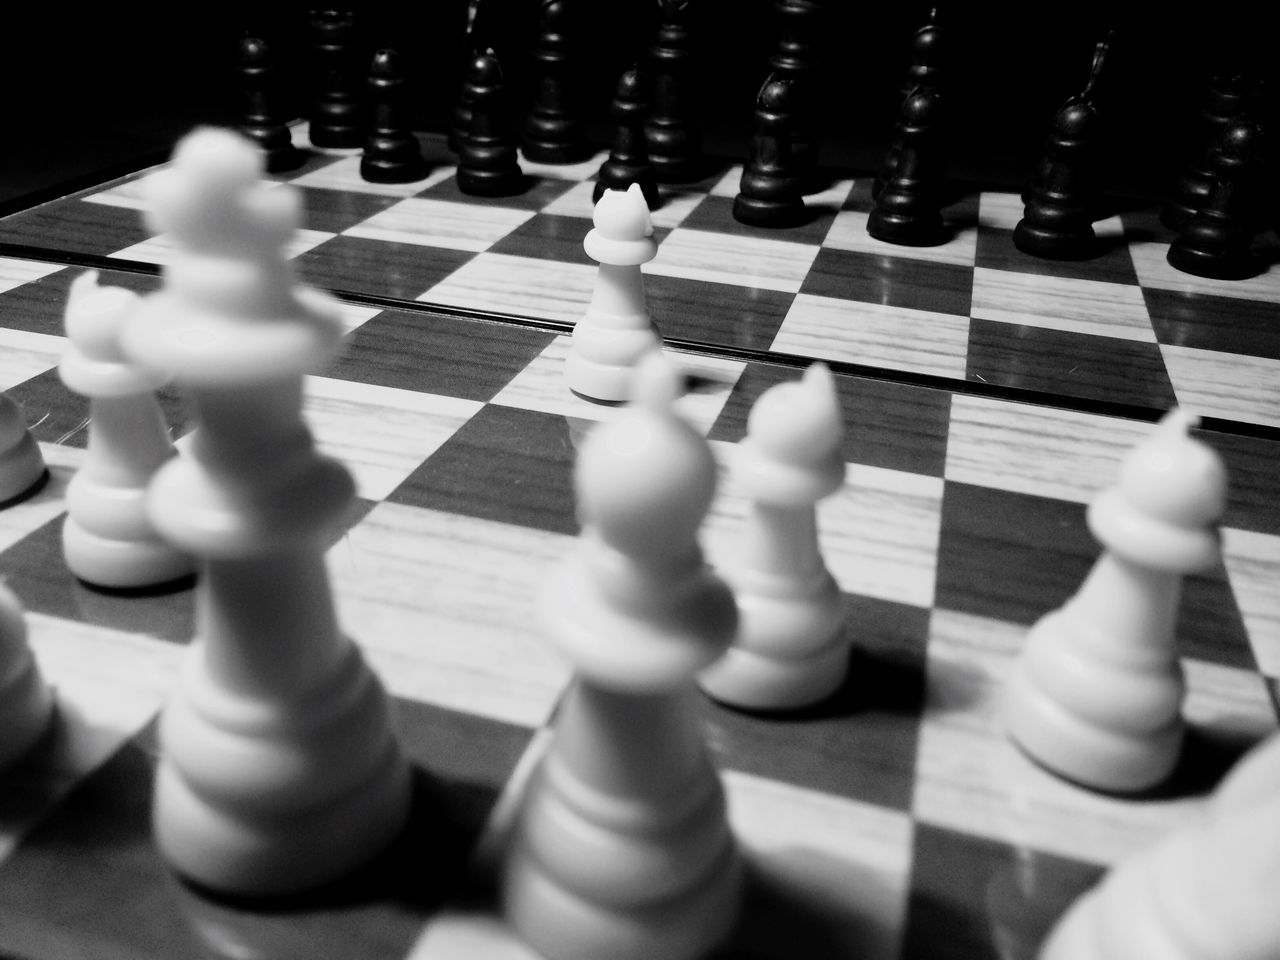 Chess Chess Board Strategy Chess Piece Leisure Games Close-up Competition Large Group Of Objects No People Indoors  Pawn - Chess Piece King - Chess Piece Starting A Trip First Move Chessboard Strategic Strategy Game Games Competitive Sport Knight - Chess Piece